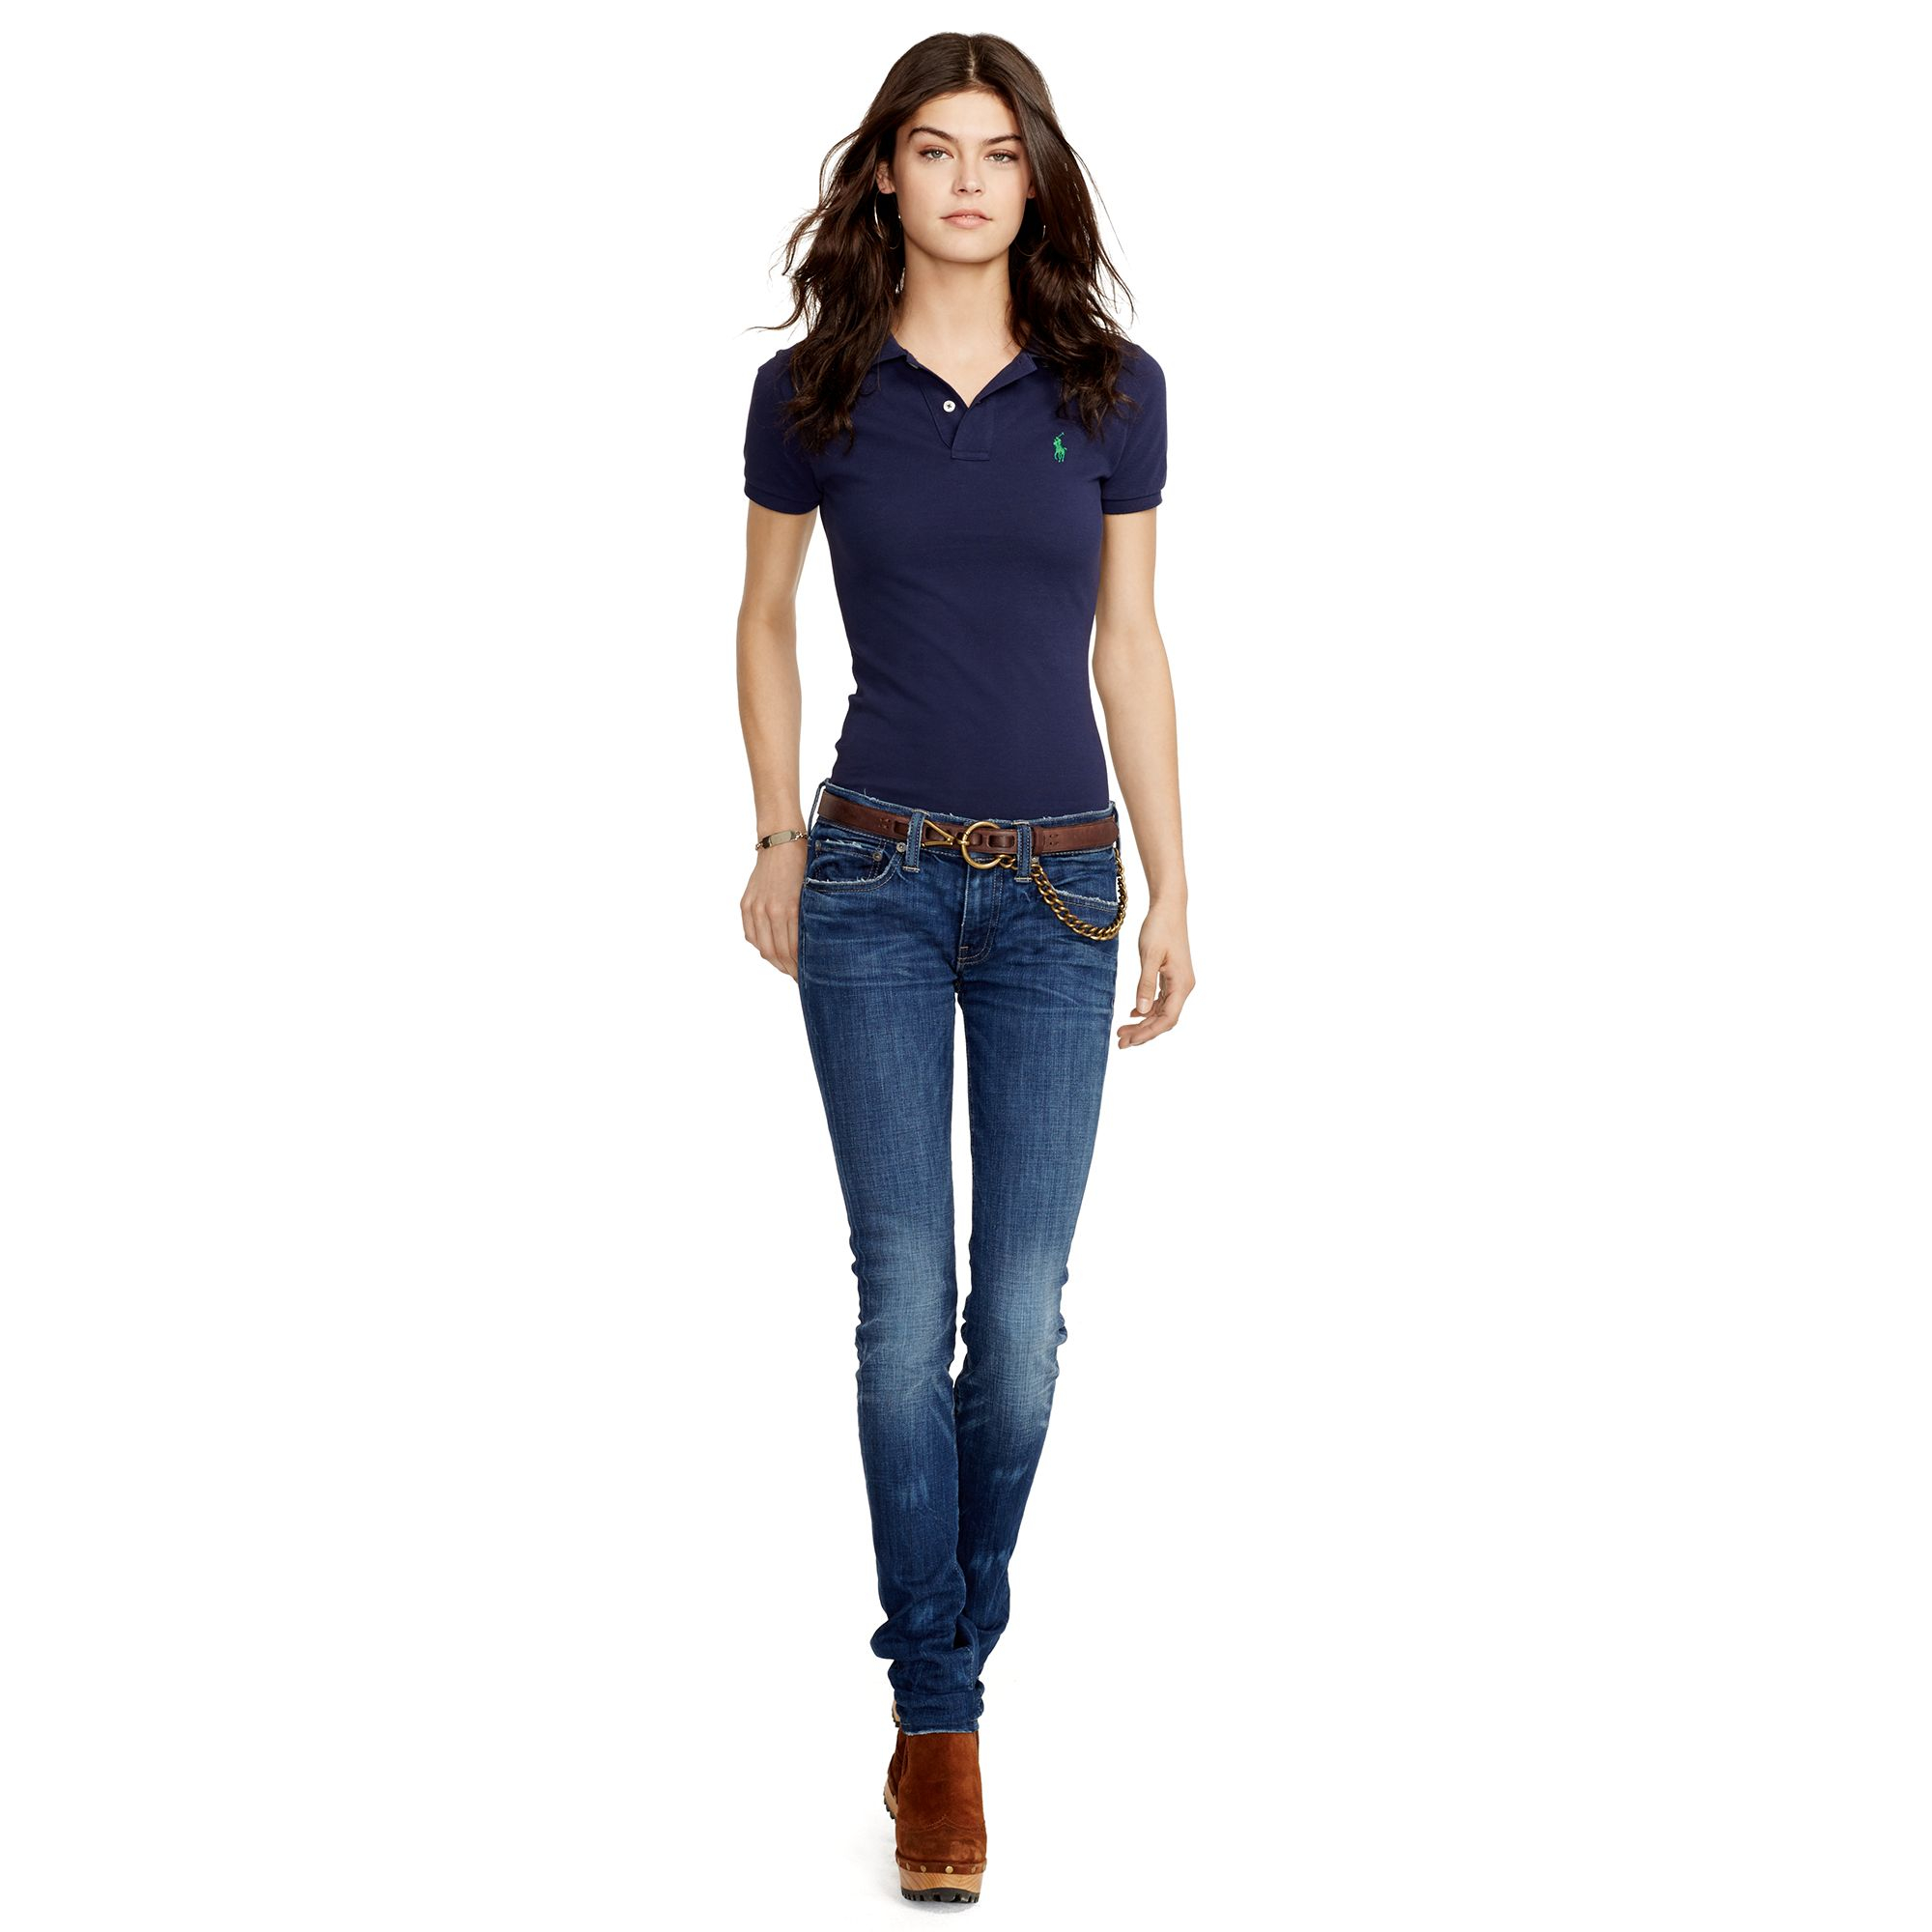 Polo ralph lauren skinny fit polo shirt in blue newport for Polo shirt and jeans